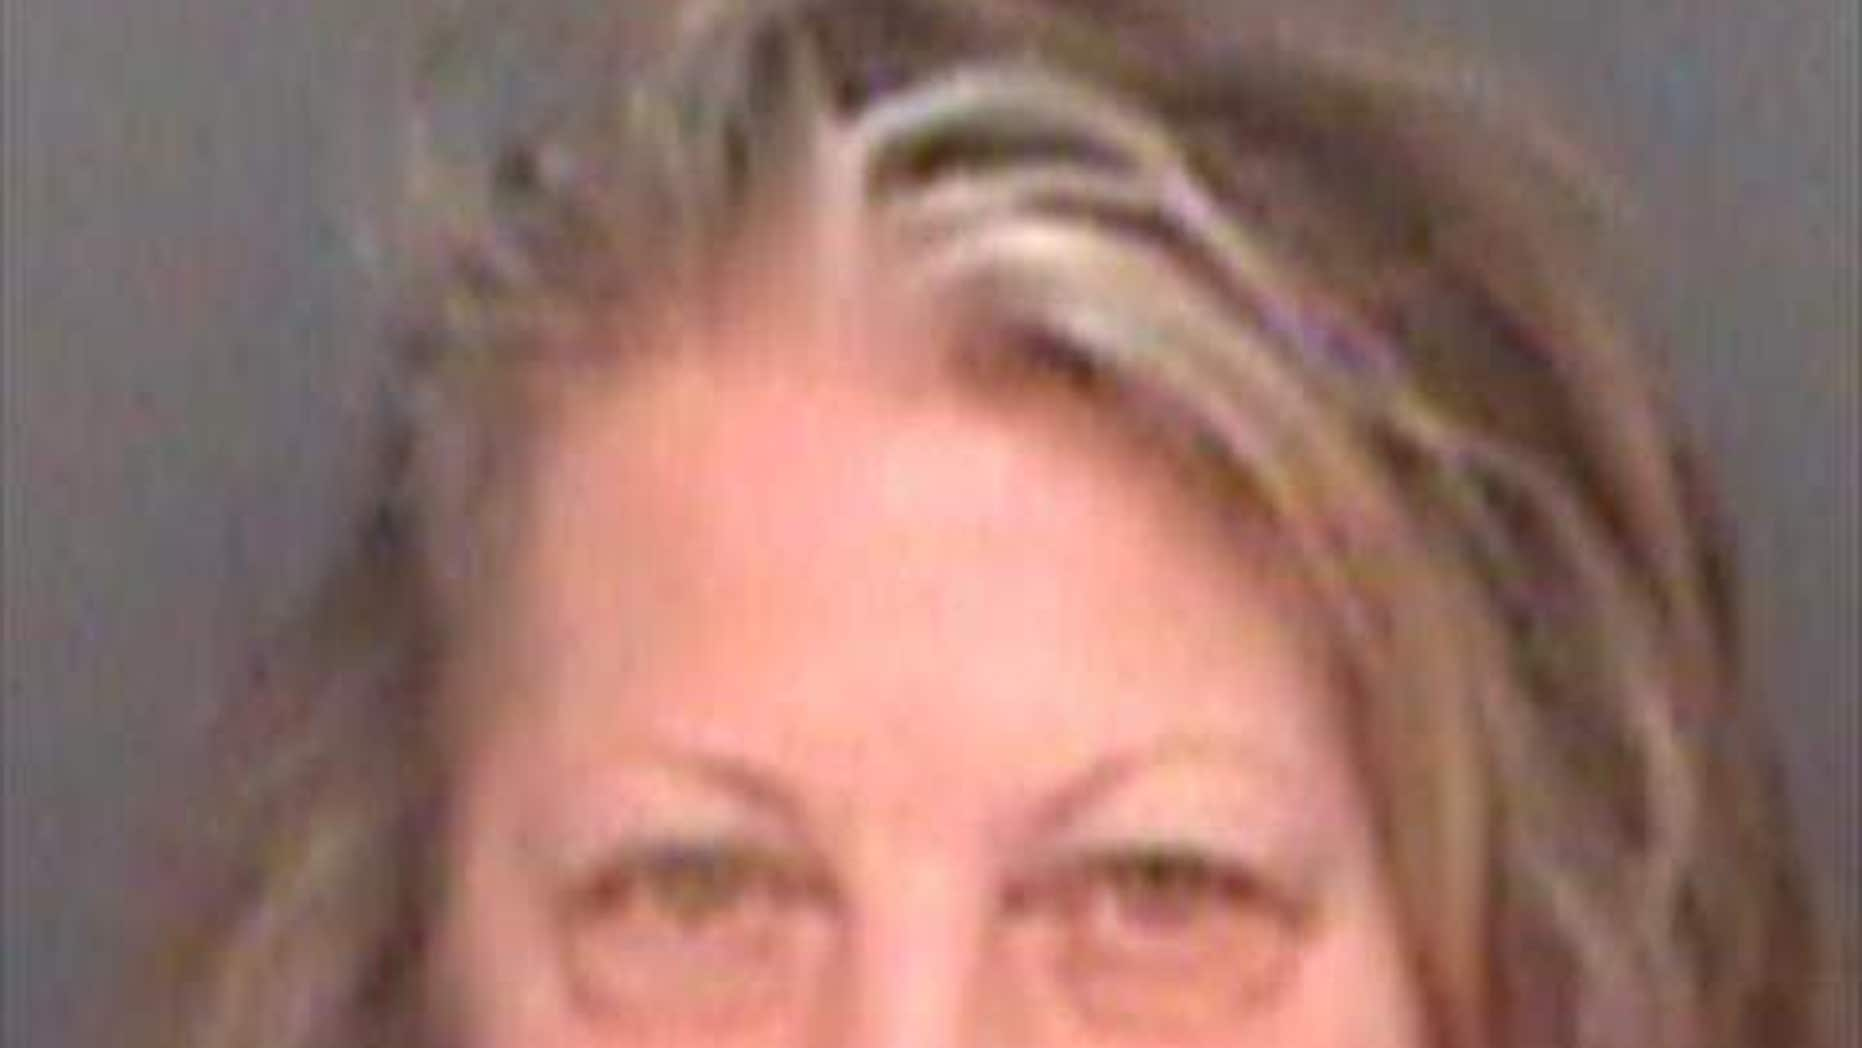 Jennifer Sue Roberts, 57, was arrested Friday for telling 911 she had a medical emergency, but reportedly just wanted beer.